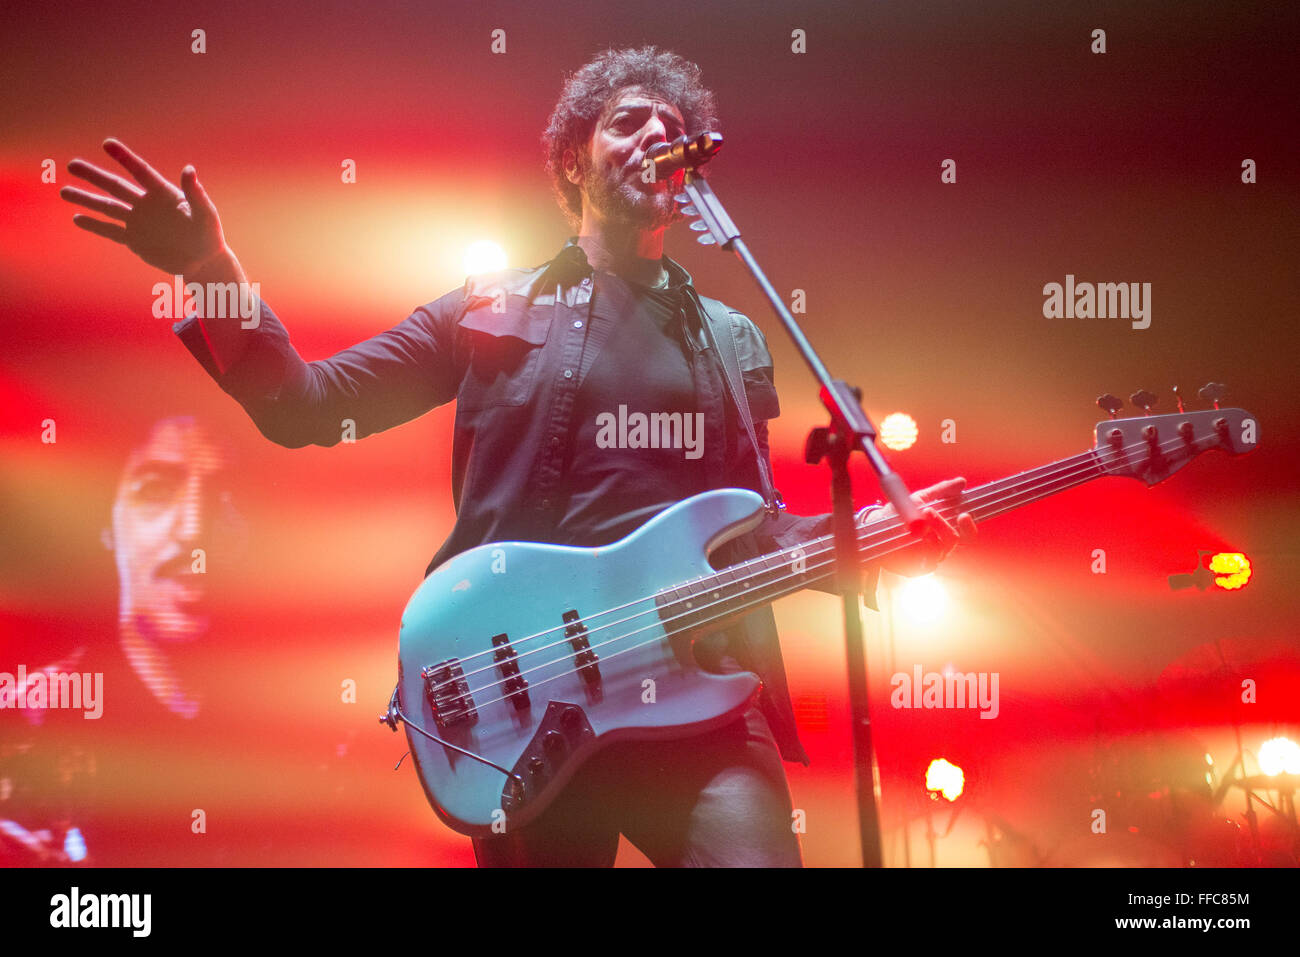 Turin, Italy. 11th February, 2016. Italian singer Max Gazz performs live during a concert at La Concordia on February - Stock Image